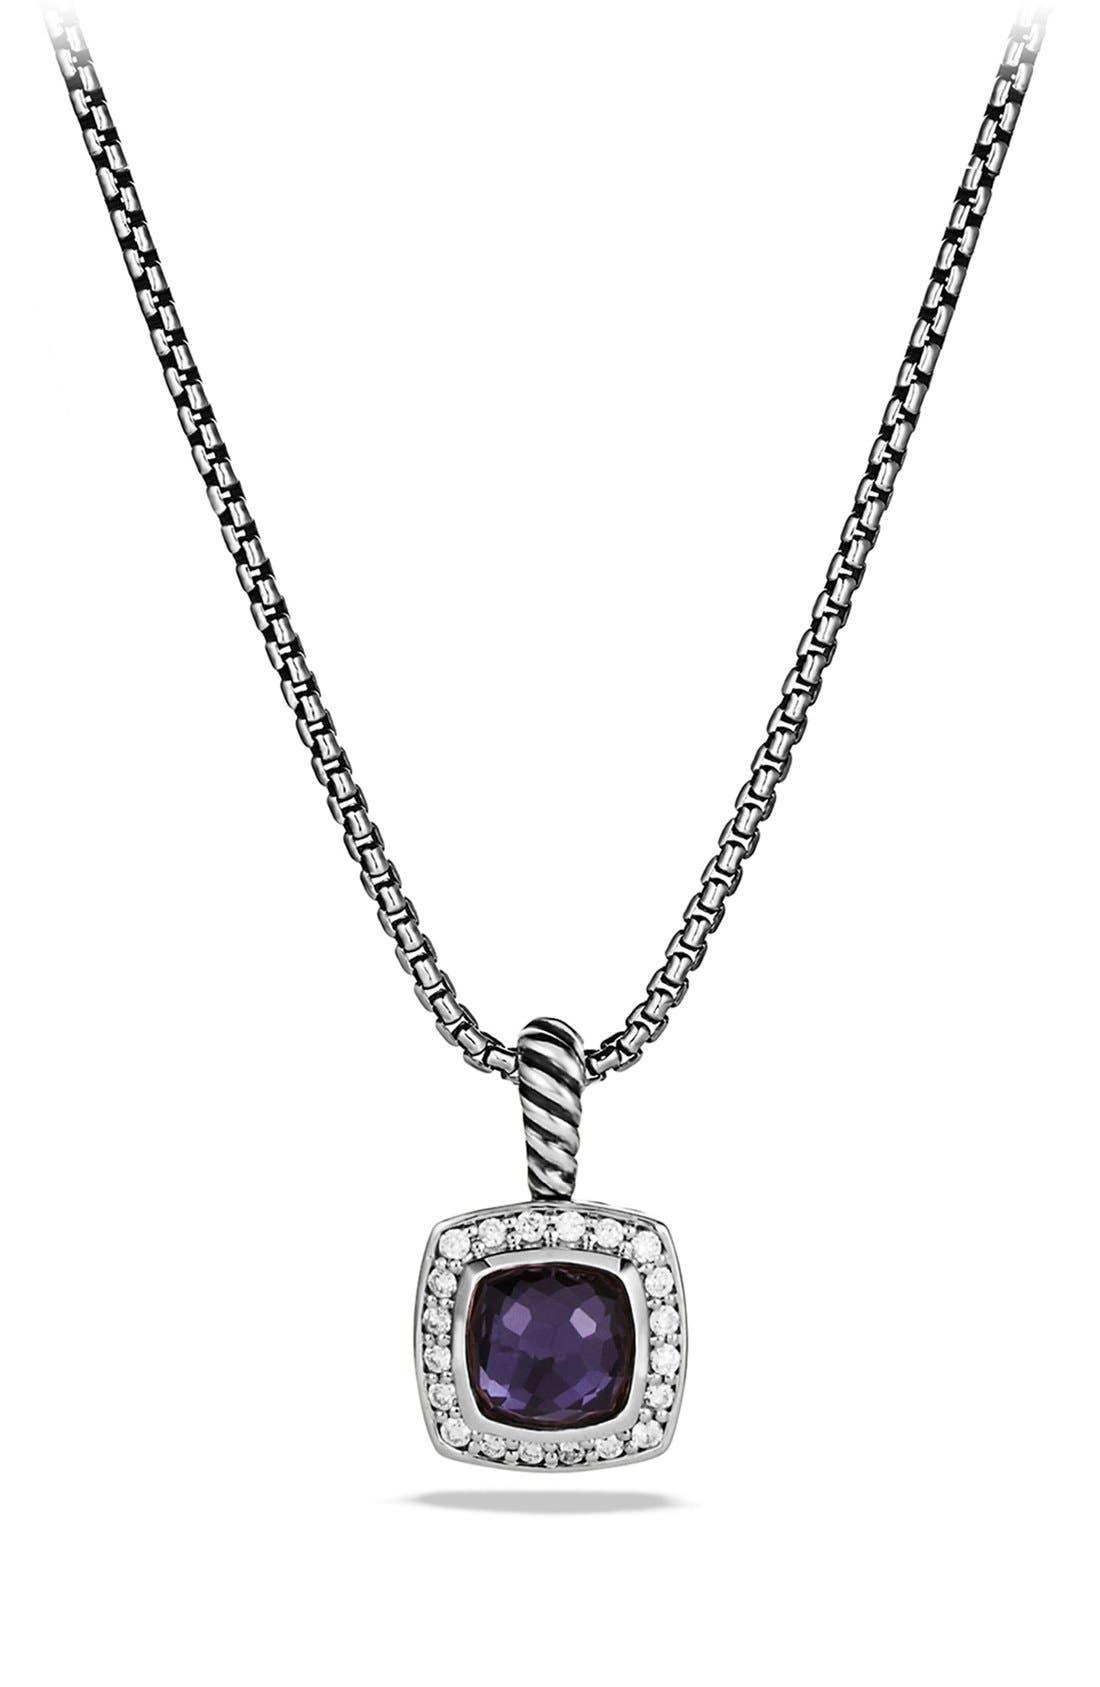 Alternate Image 1 Selected - David Yurman 'Albion' Petite Pendant with Semiprecious Stone & Diamonds on Chain